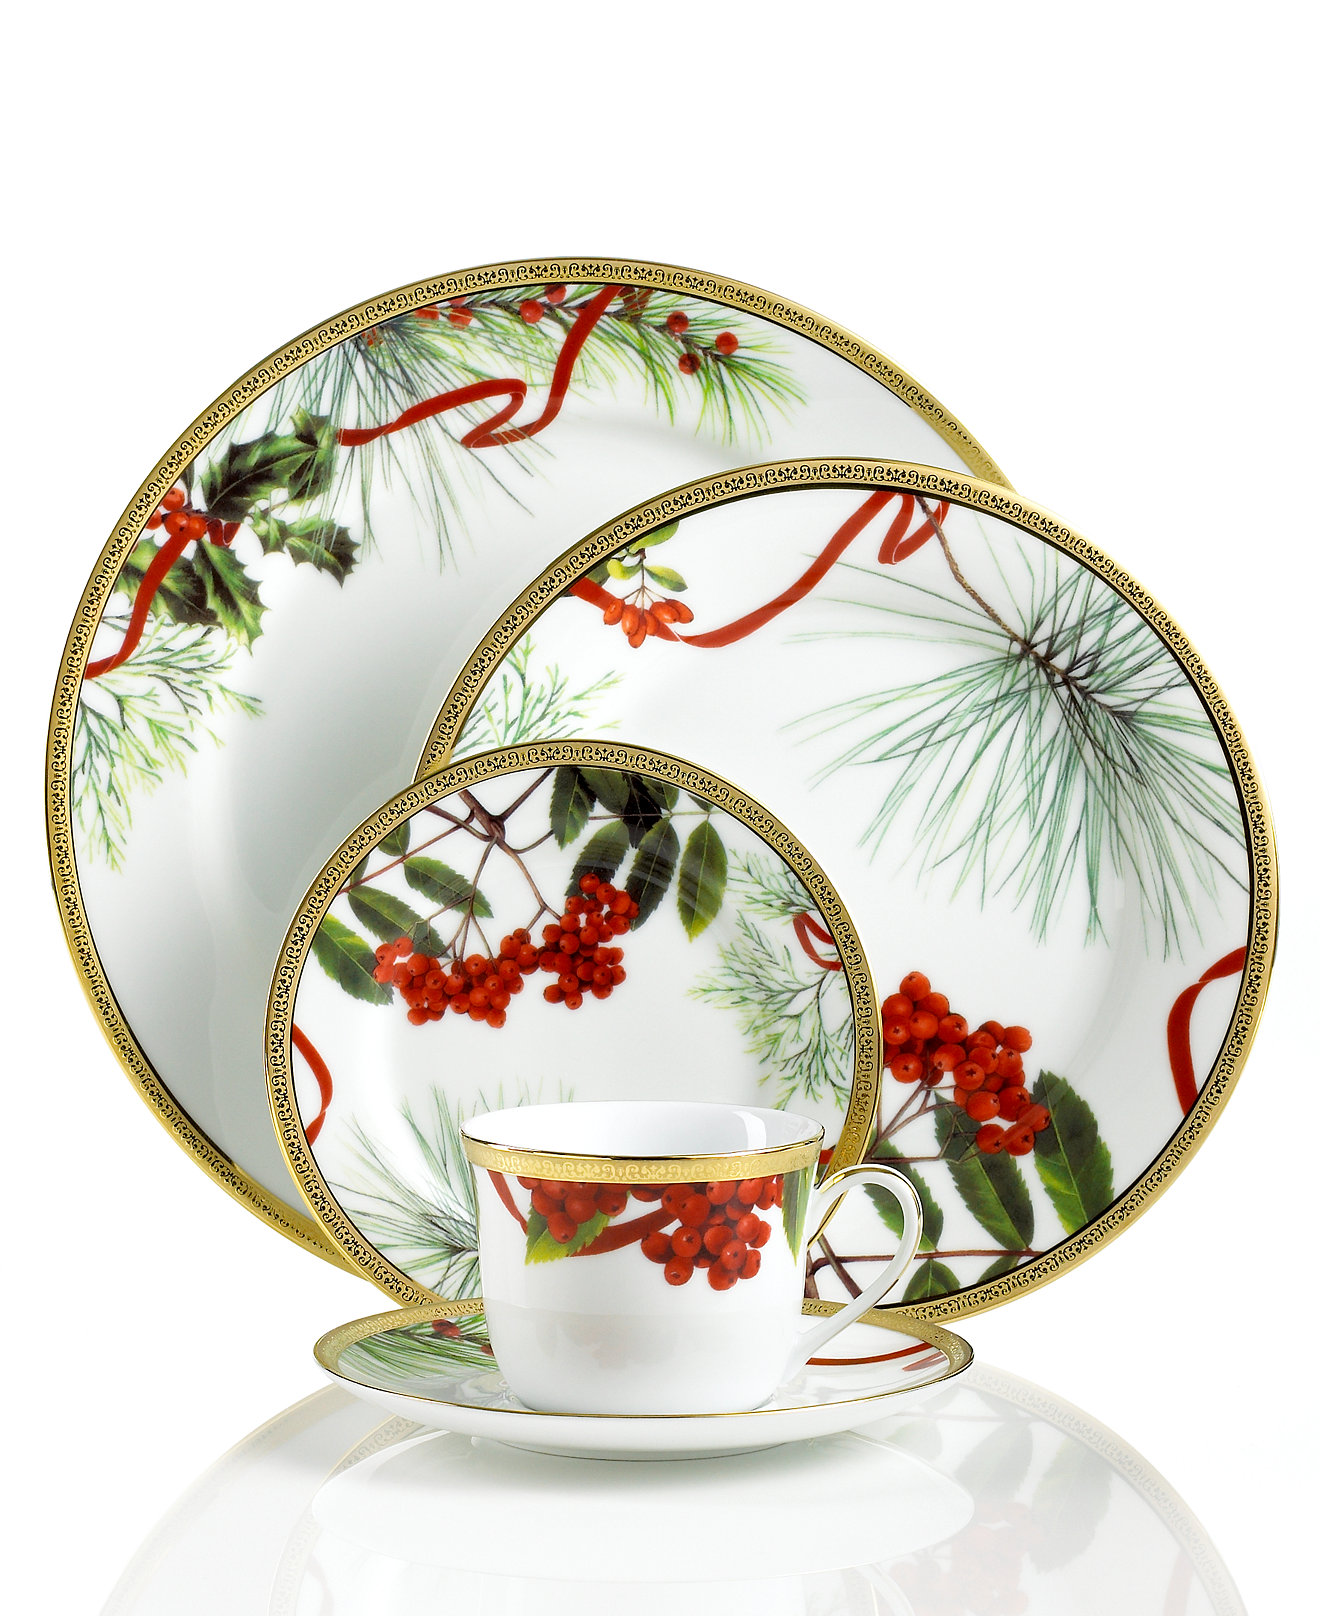 Creative Christmas Dinnerware for Christmas Decorating Ideas: Attractive Christmas Dinnerware For Christmas Decorating Ideas With Christmas Dinnerware Sets Clearance